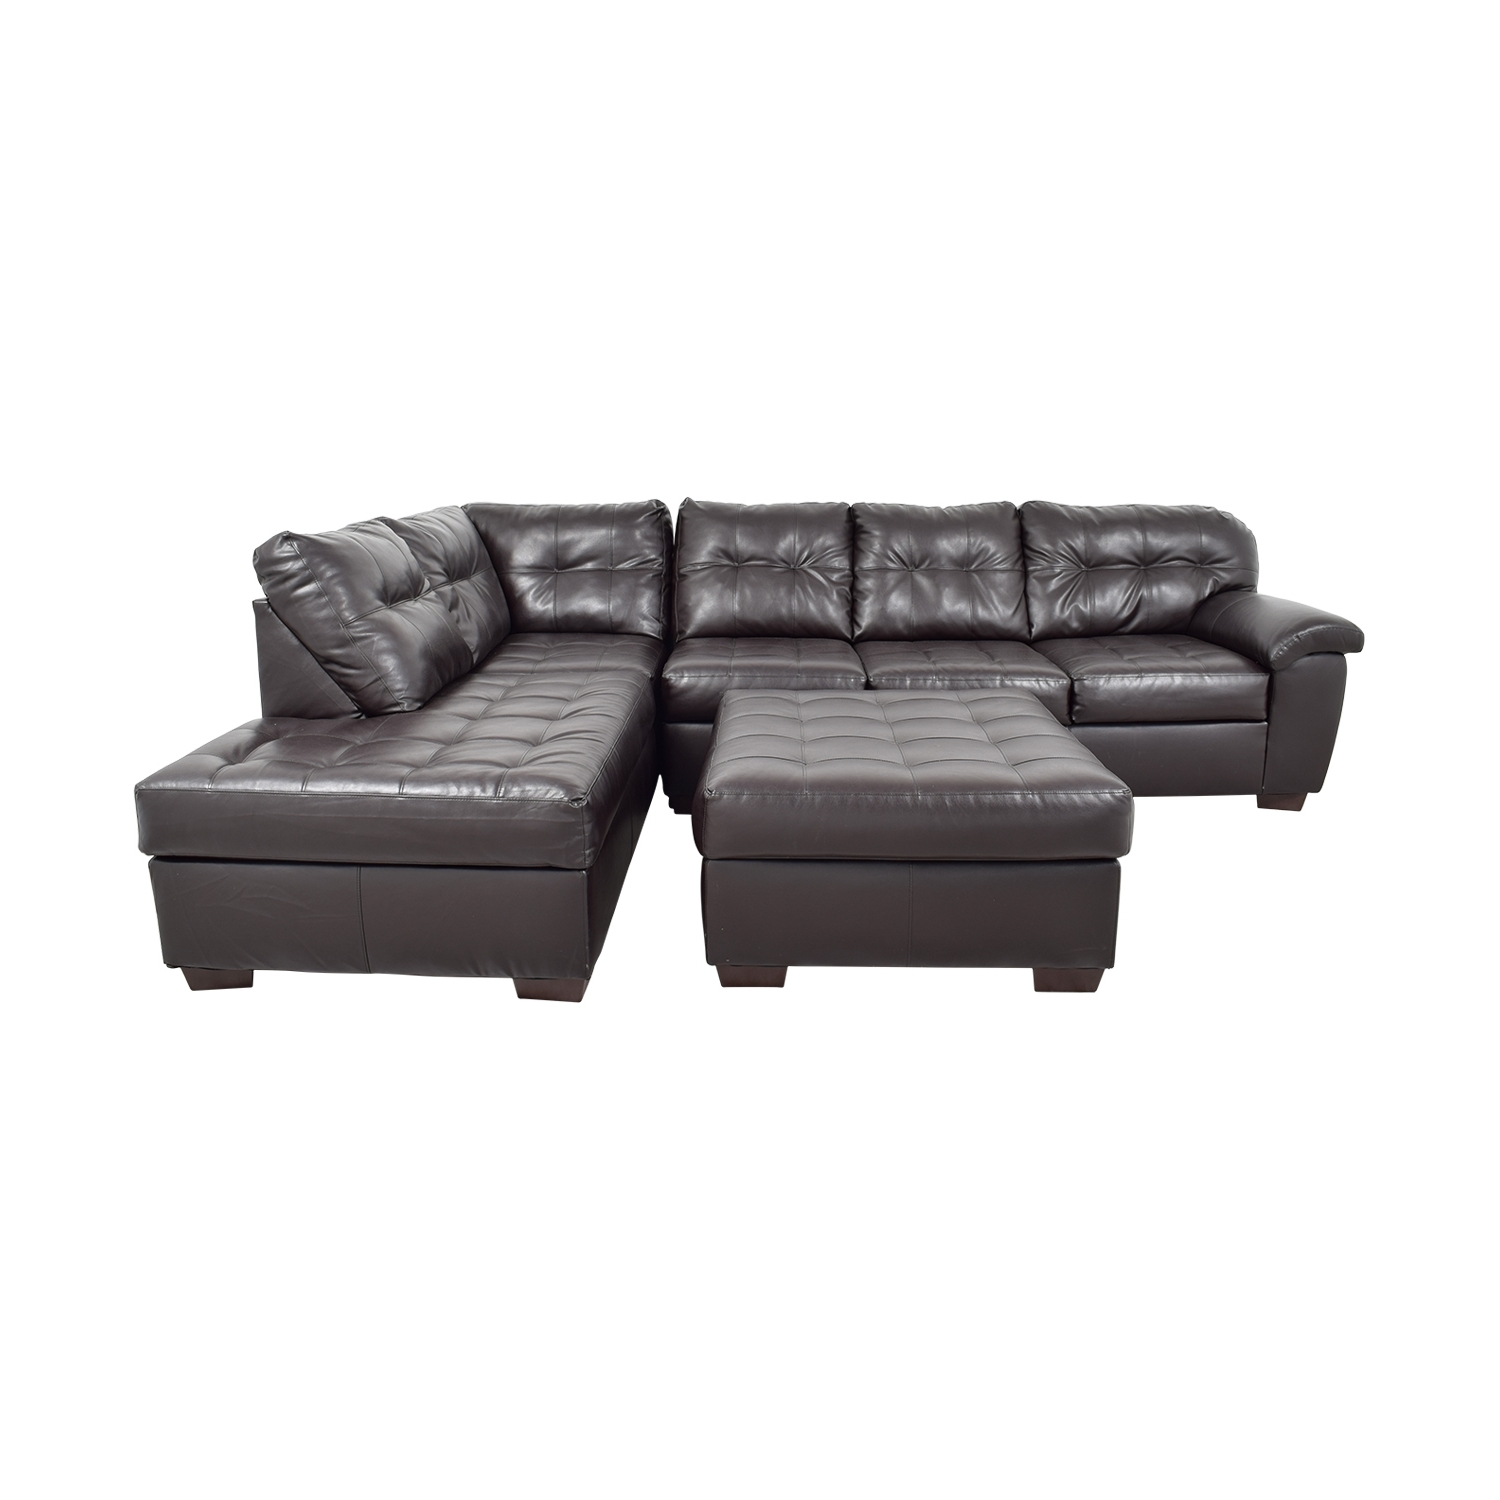 [%47% Off – Simmons Simmons Brown Leather Sectional With Ottoman / Sofas Pertaining To Favorite Simmons Chaise Sofas|Simmons Chaise Sofas In Well Known 47% Off – Simmons Simmons Brown Leather Sectional With Ottoman / Sofas|Trendy Simmons Chaise Sofas For 47% Off – Simmons Simmons Brown Leather Sectional With Ottoman / Sofas|Fashionable 47% Off – Simmons Simmons Brown Leather Sectional With Ottoman / Sofas Intended For Simmons Chaise Sofas%] (View 2 of 15)